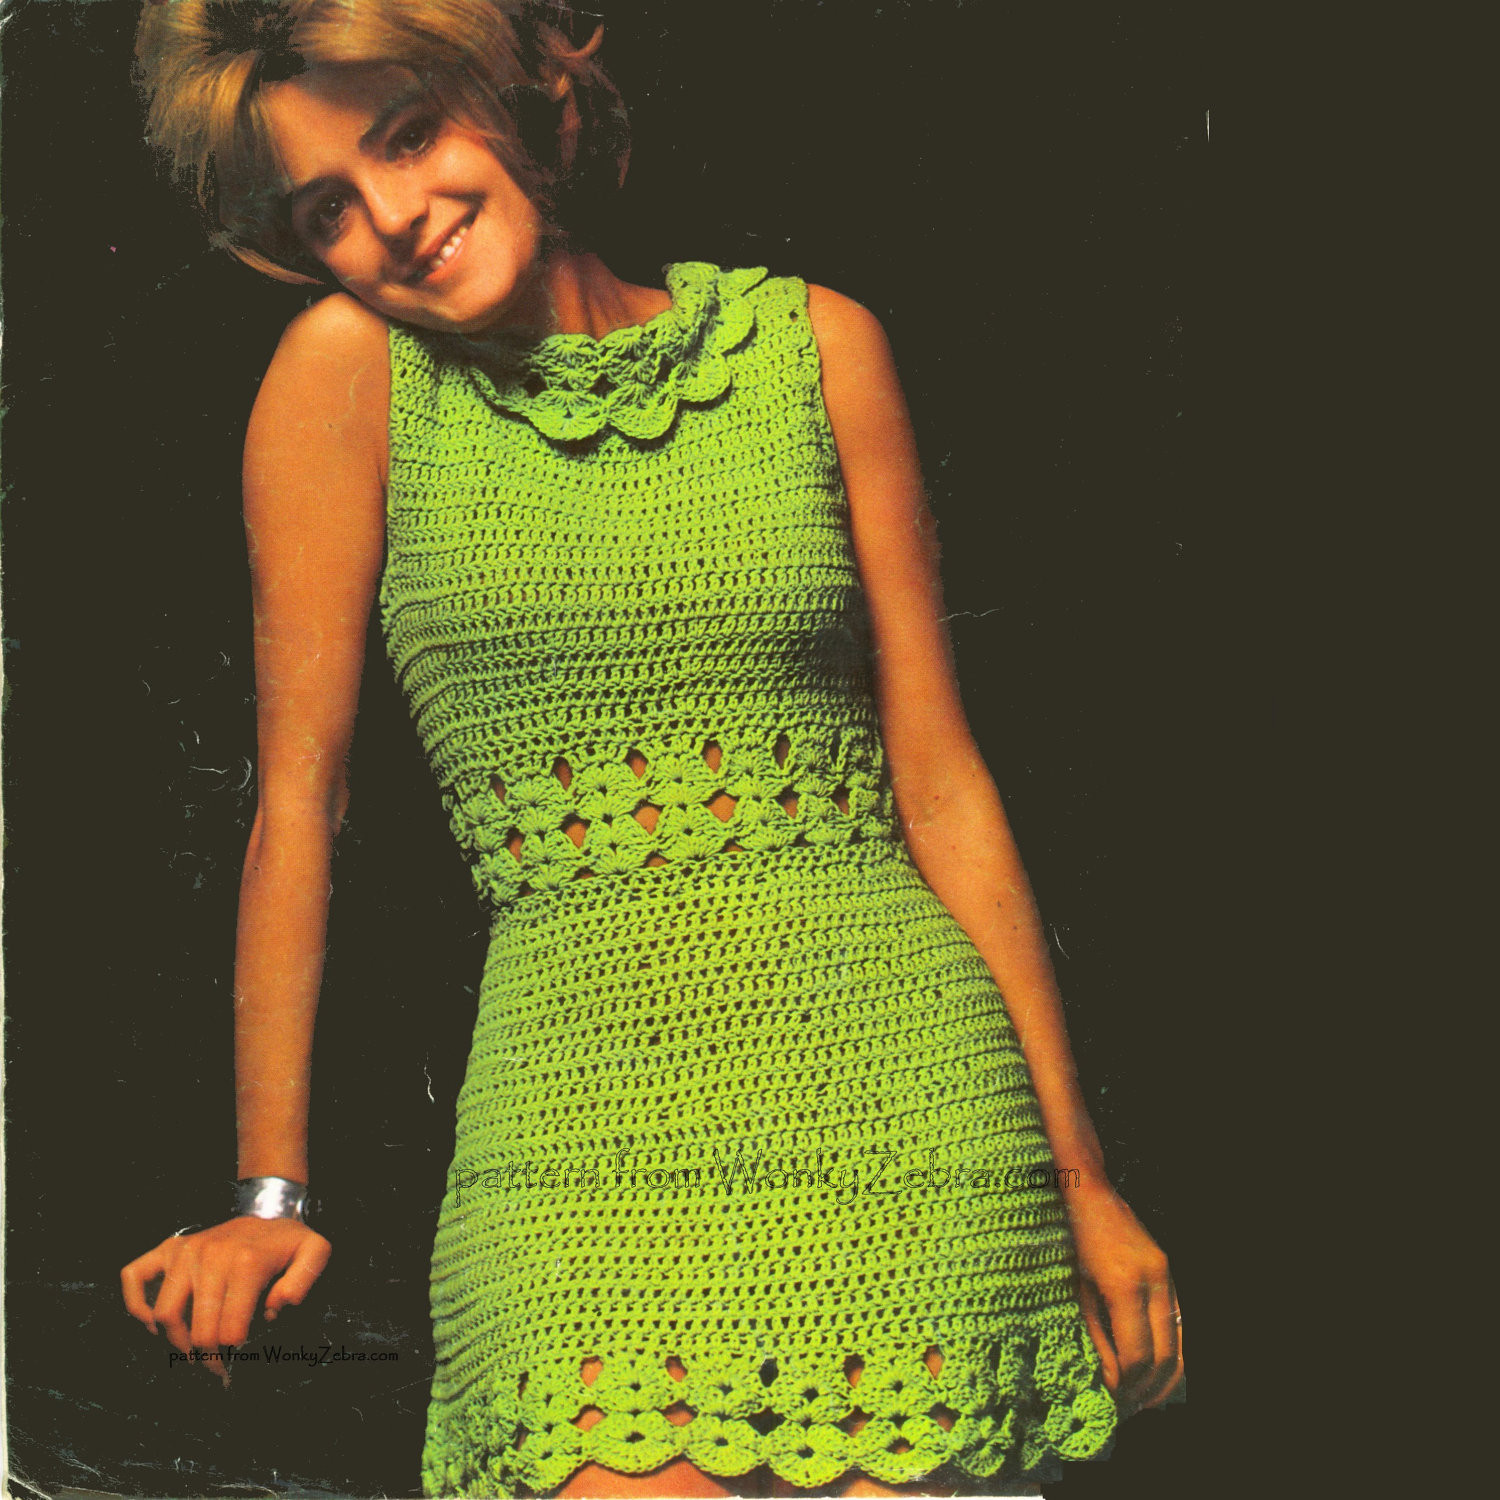 Crochet Mini Dress Inspirational Pretty Crocheted Dresses and Skirts for Summer Of Beautiful 46 Pictures Crochet Mini Dress